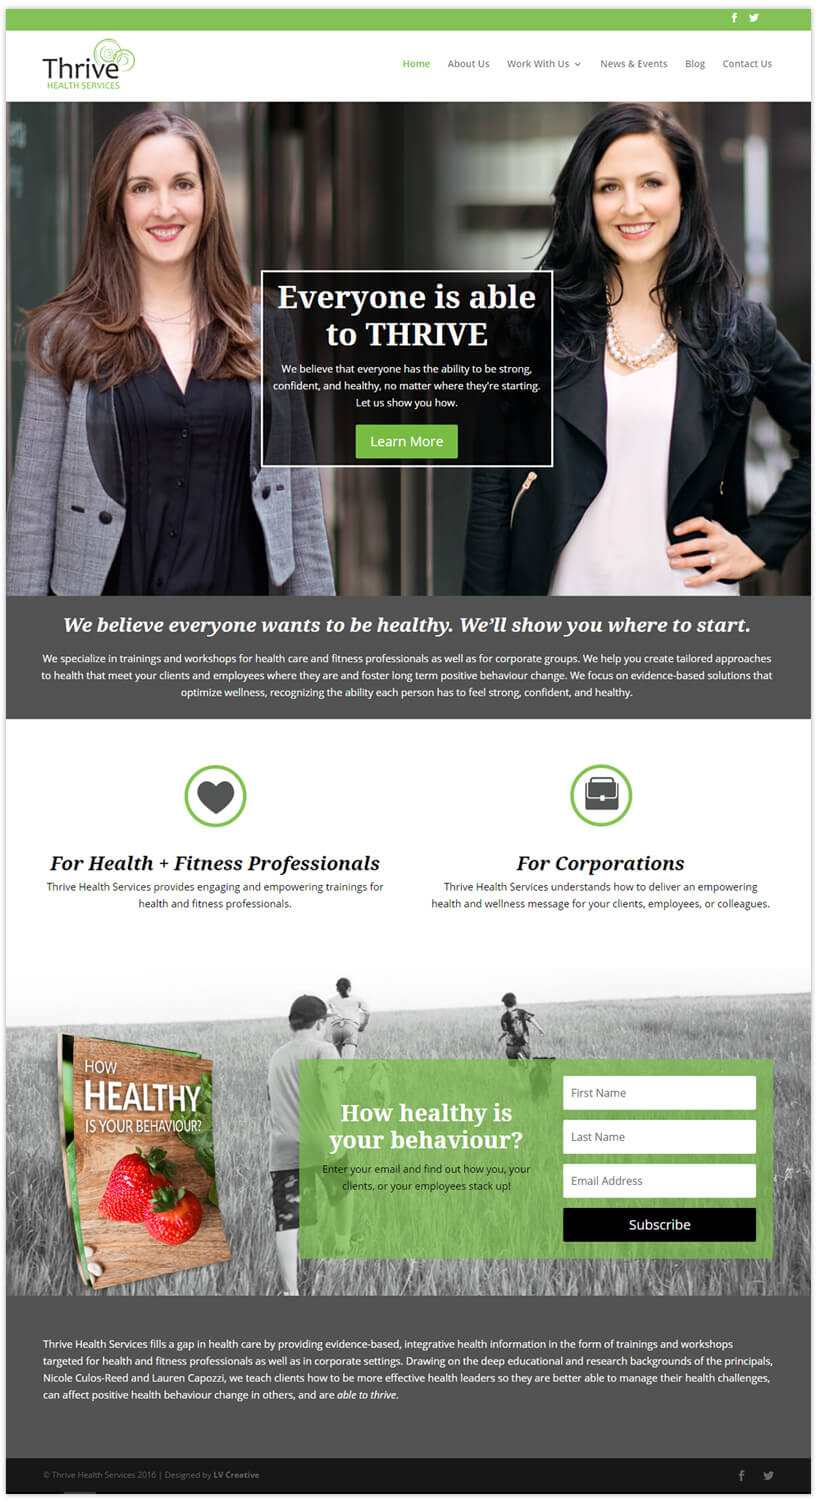 Thrive Health Services website